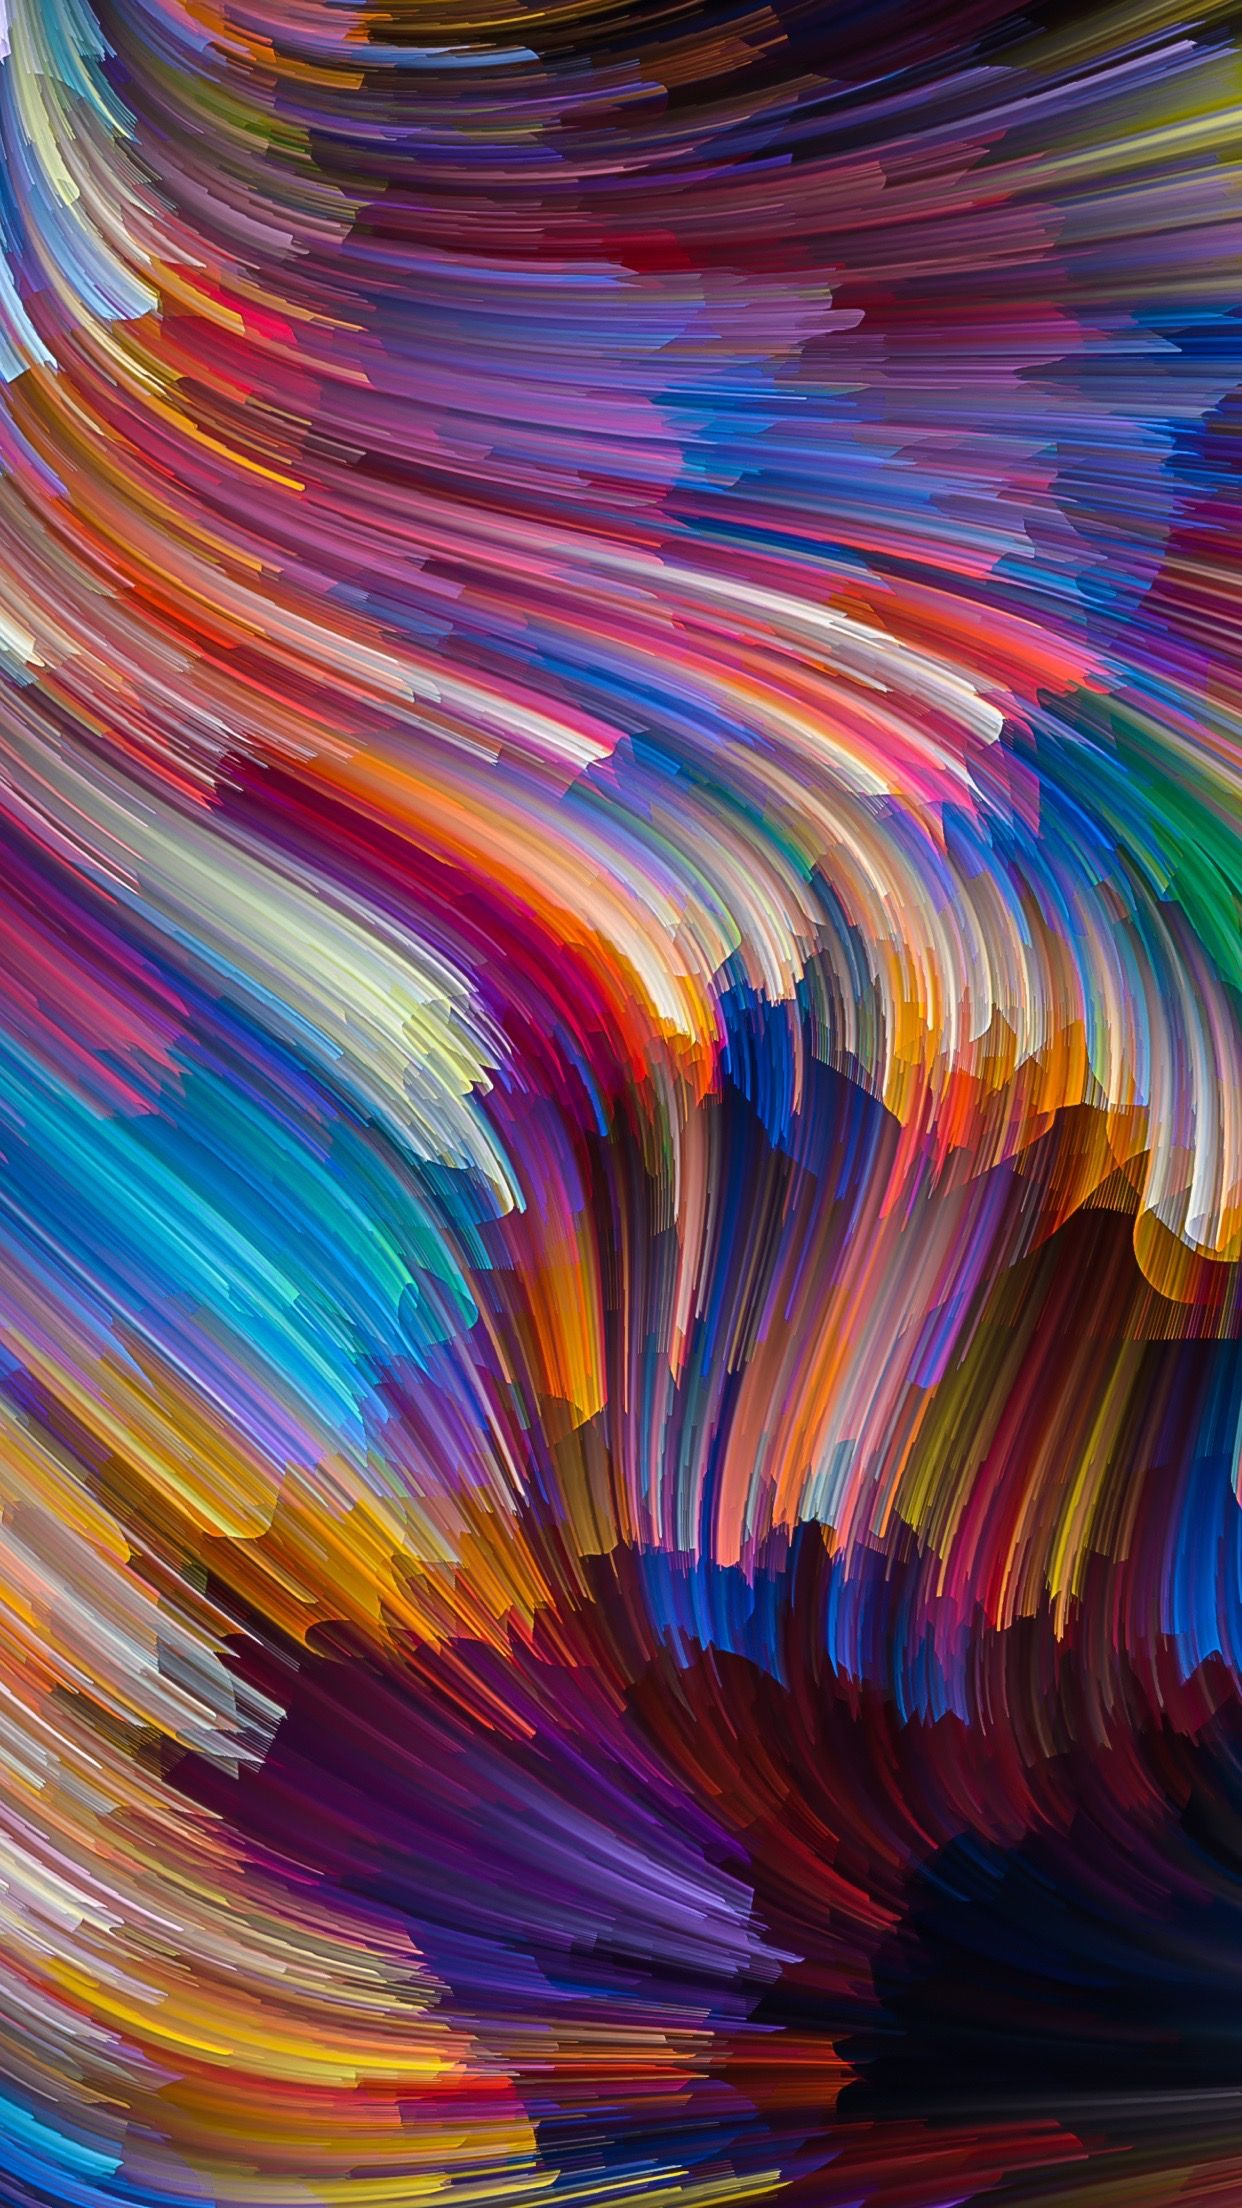 Idea by Rylee Clifton on iPhone Abstract wallpaper design